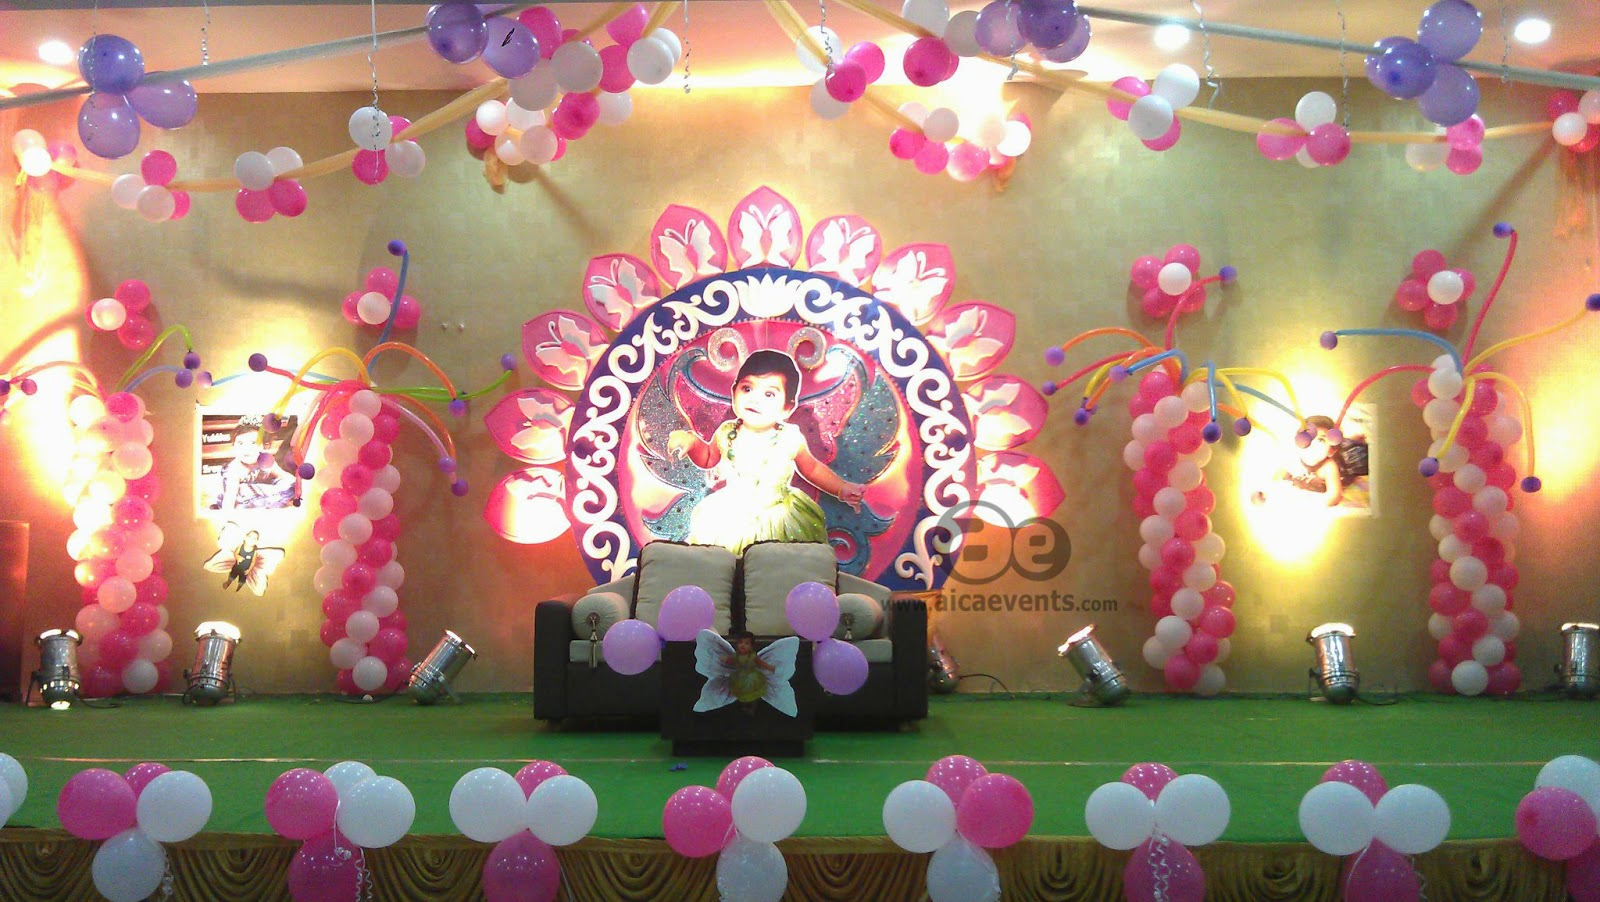 Aicaevents india butterfly theme birthday party decorations for Balloon decoration for stage